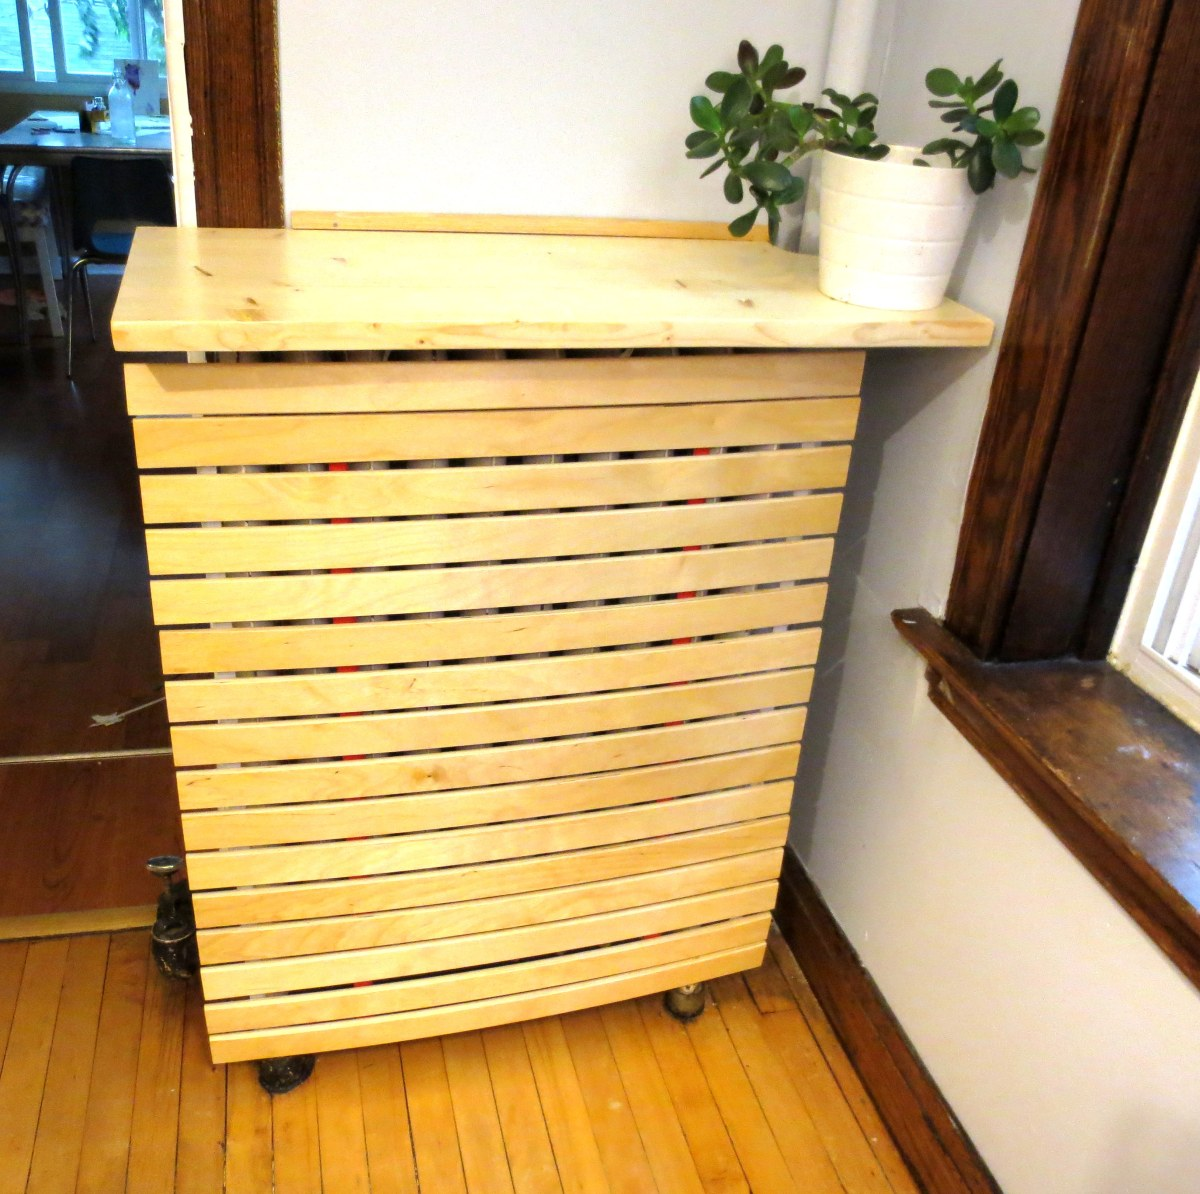 Rusty Victorian to Danish Modern: Cover your Radiator with Old IKEA Bed Slats